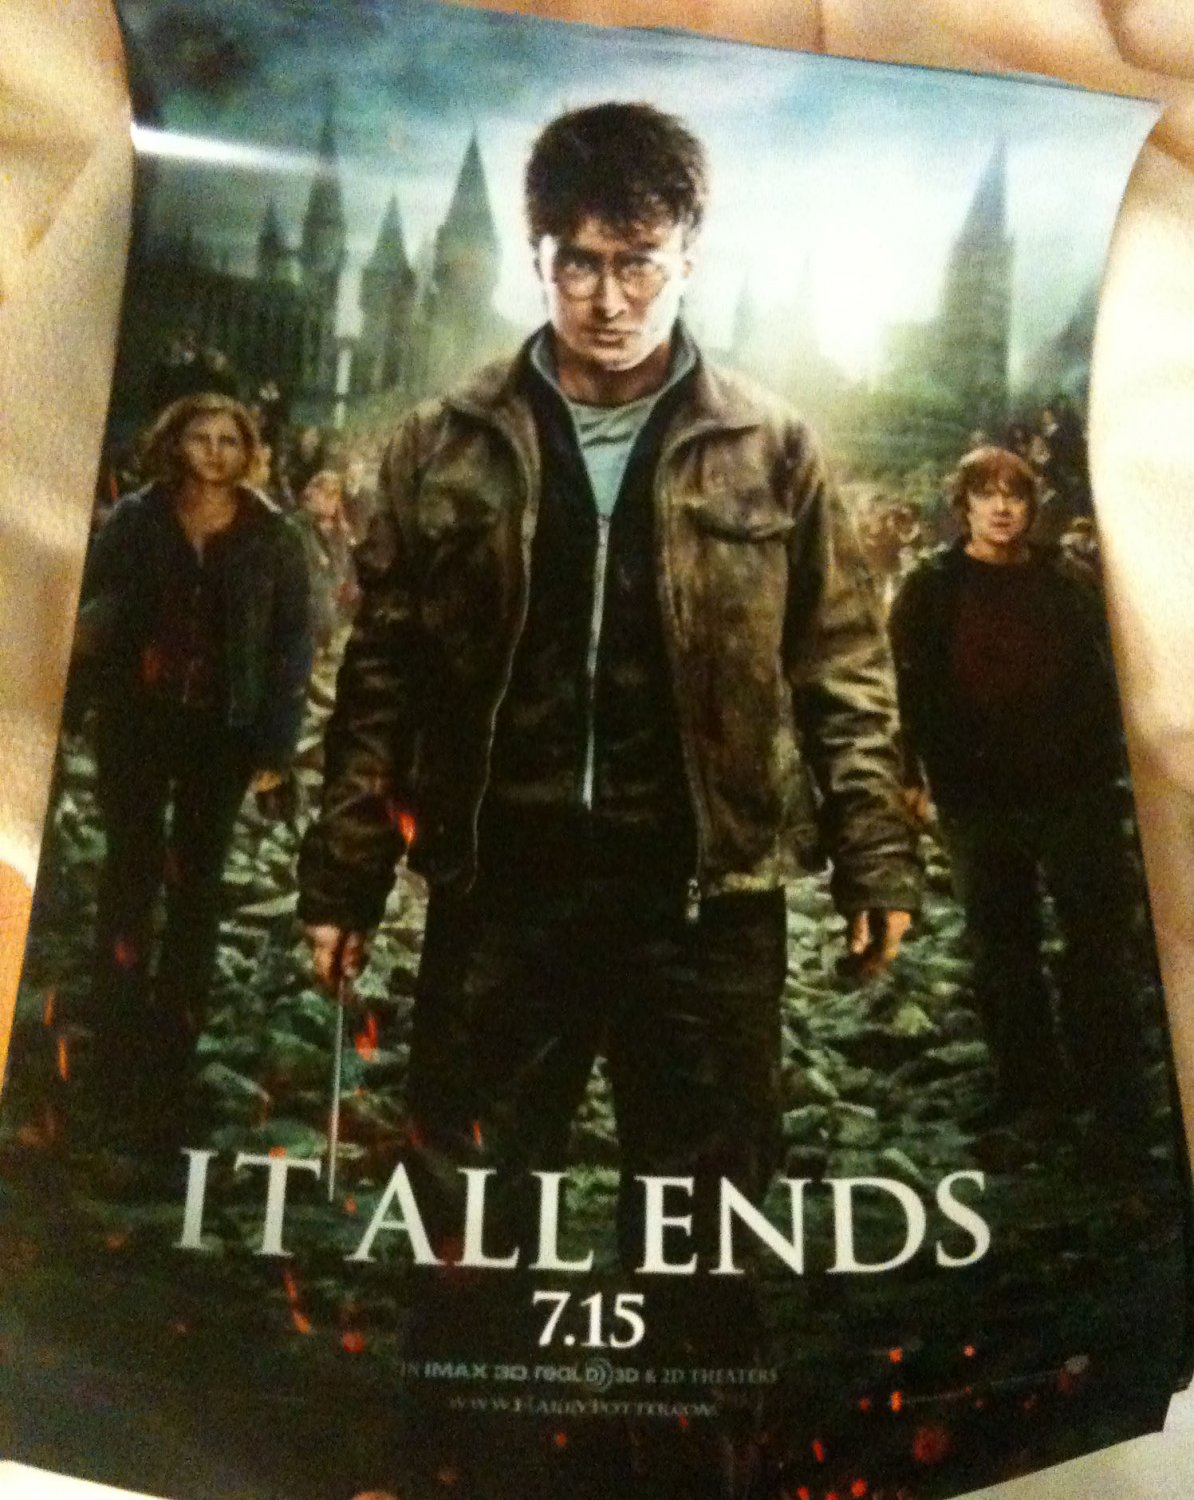 Harry Potter and the Deathly Hallows Part 2 mini poster